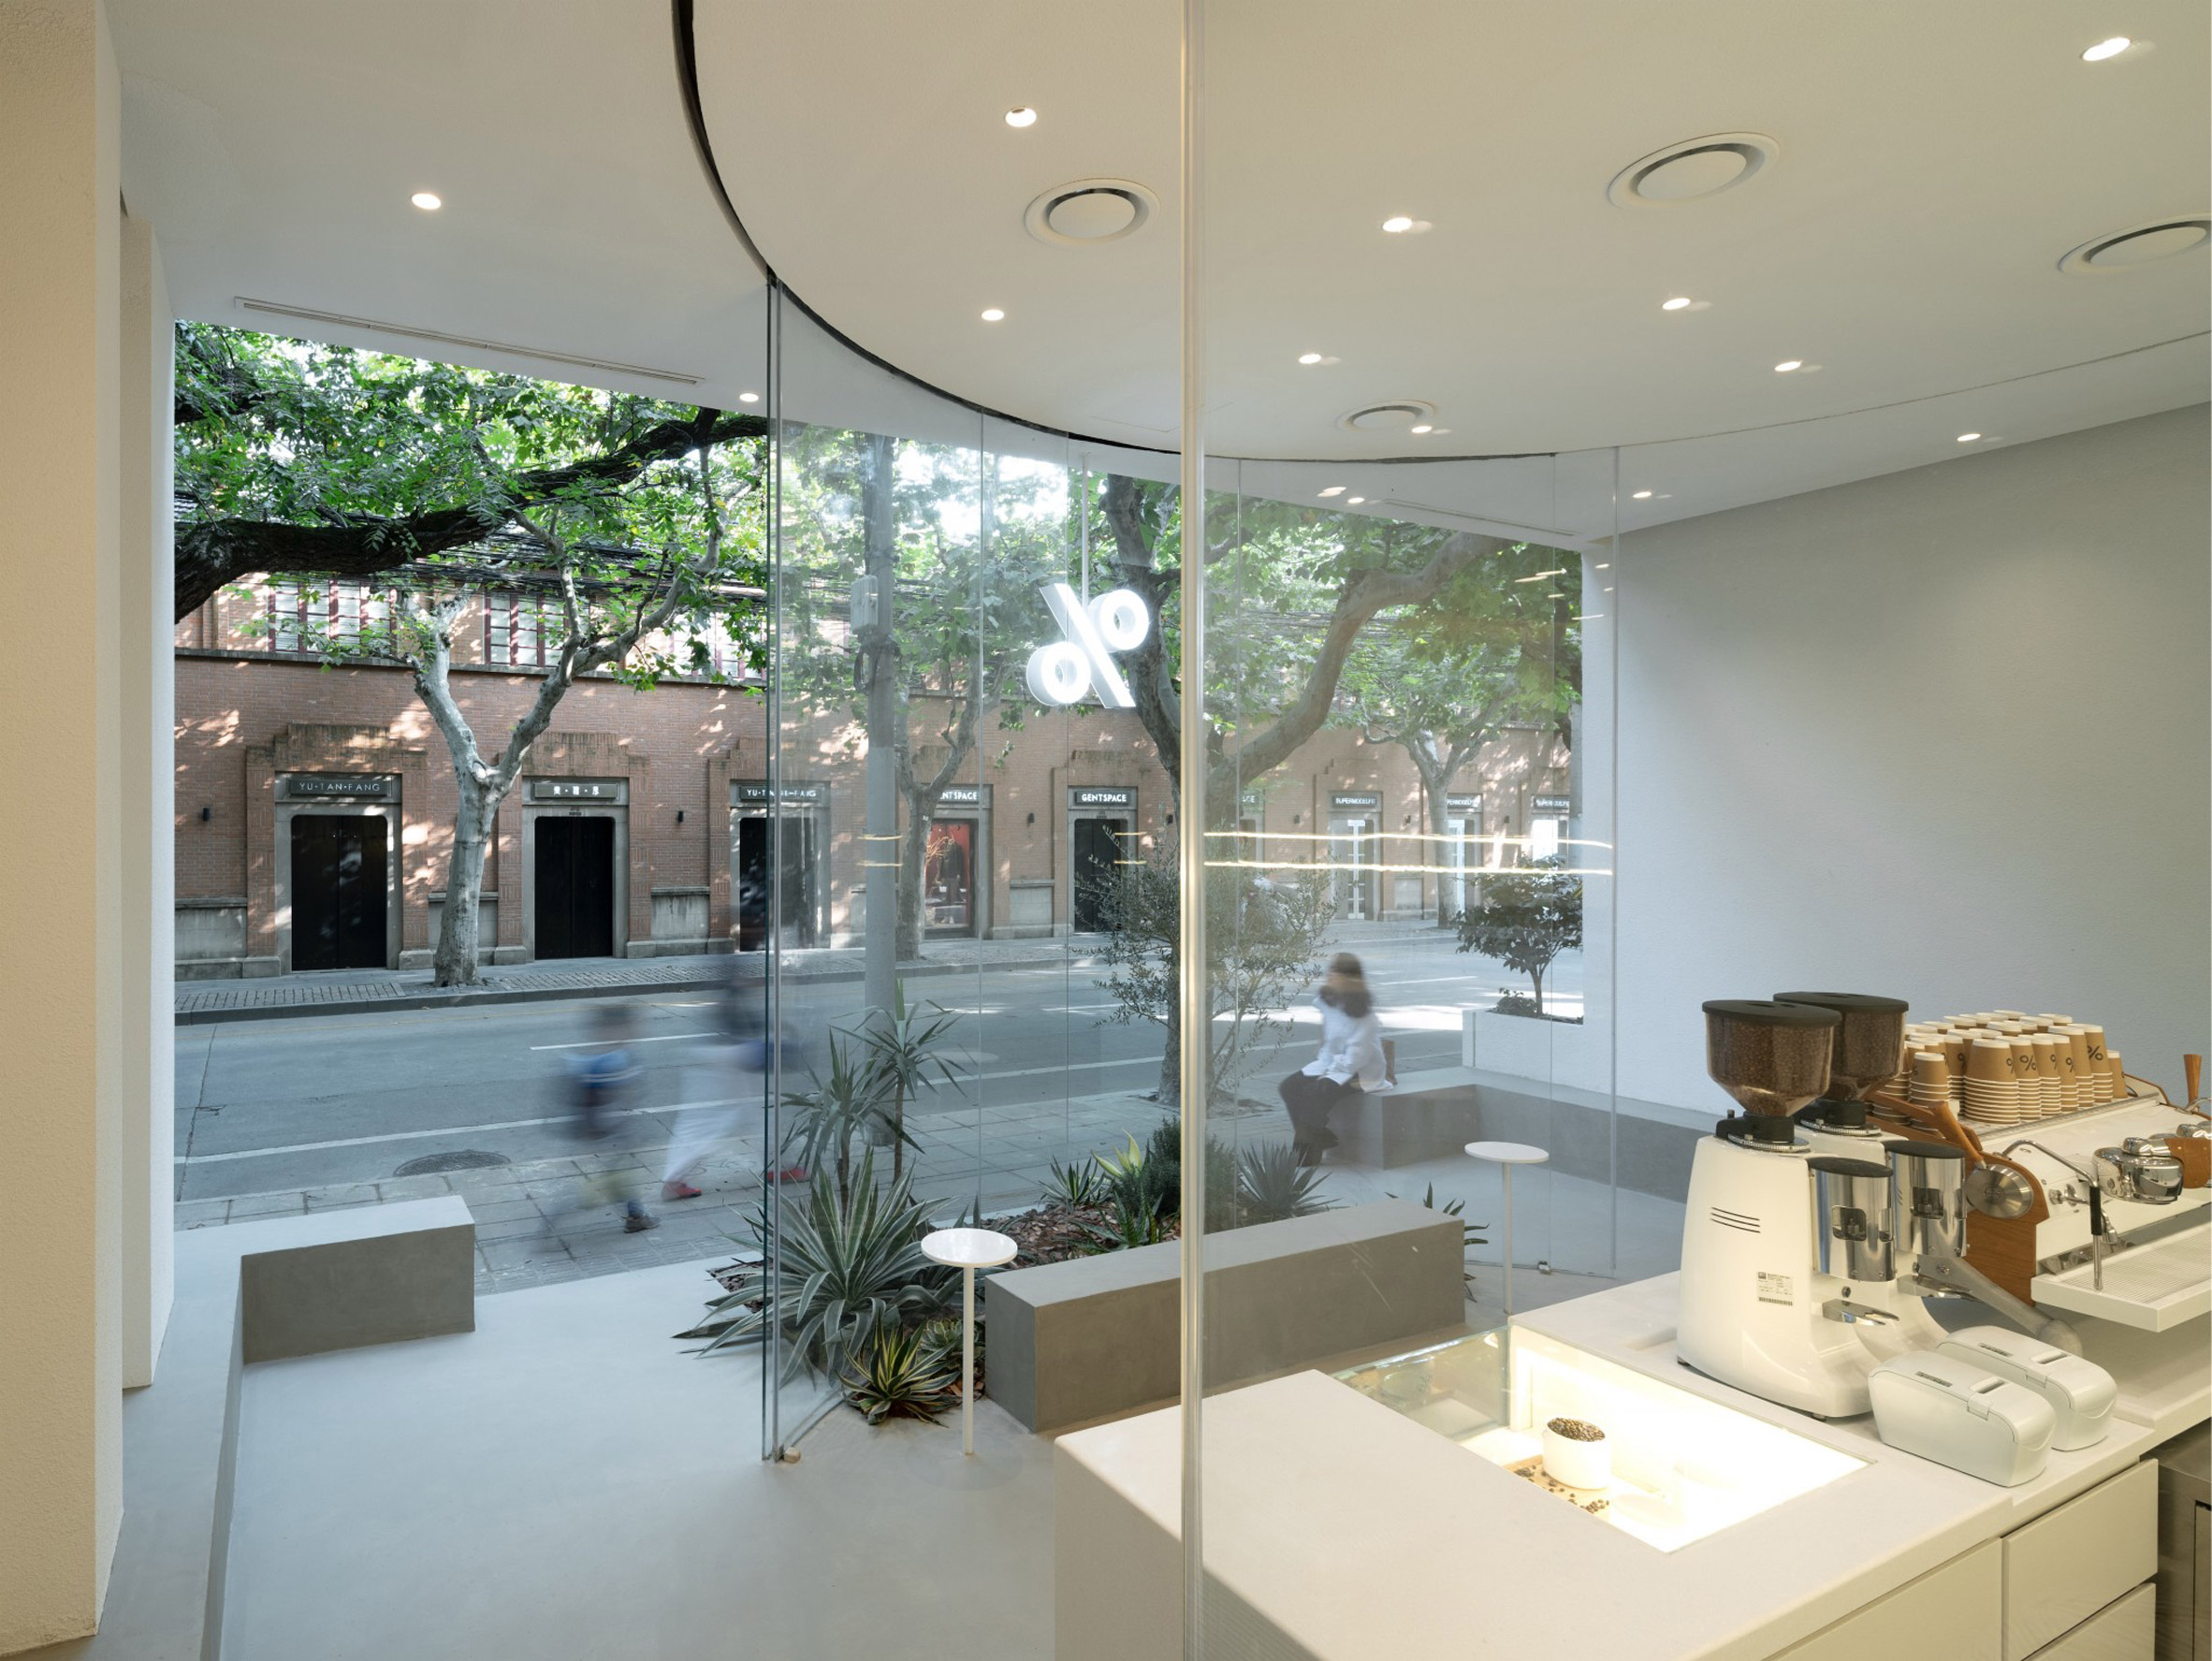 Interior of % Arabica West by BLUE Architecture studio